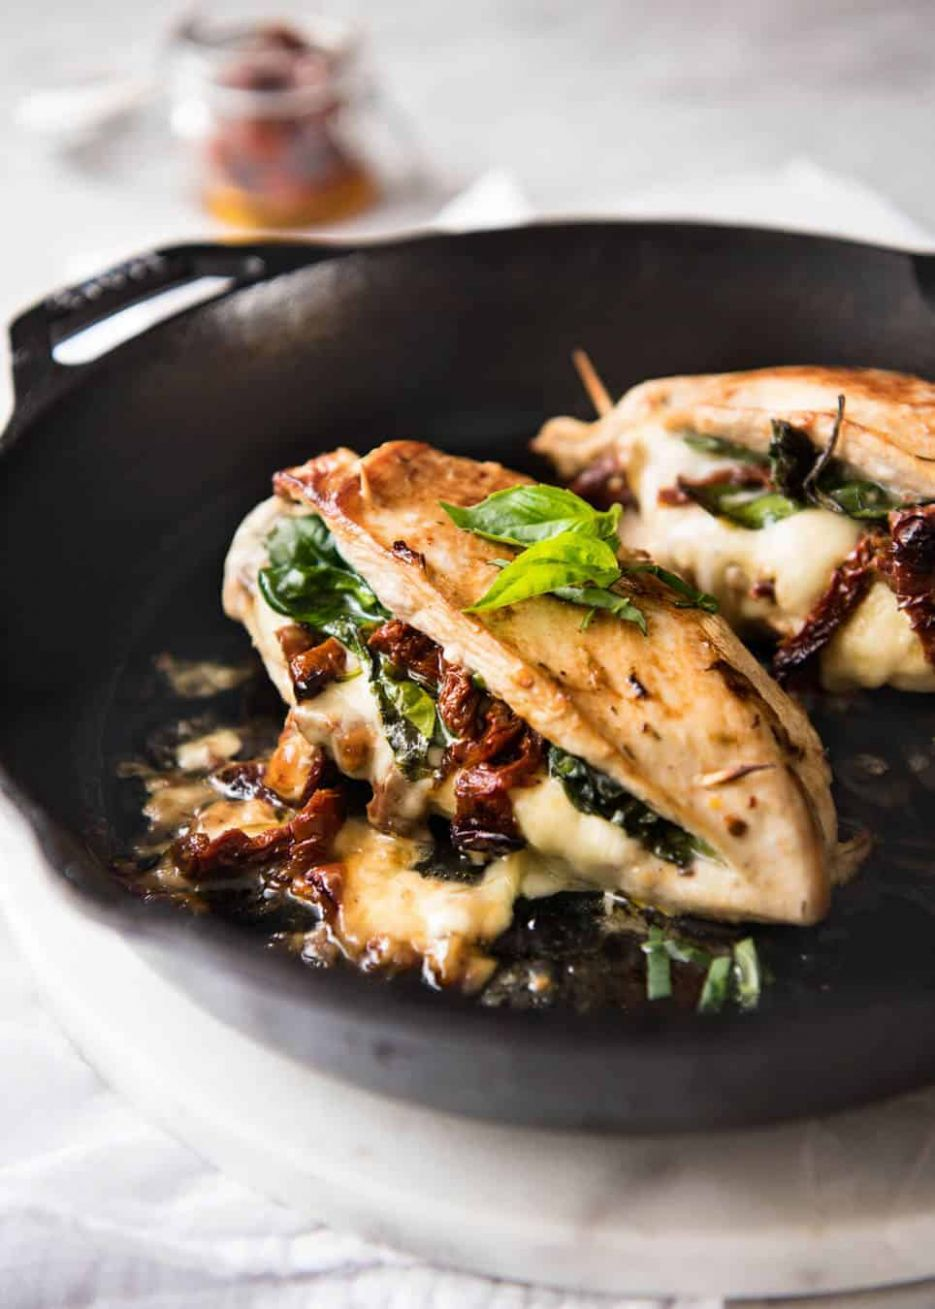 Sun Dried Tomato, Spinach & Cheese Stuffed Chicken Breast - Recipes Chicken Breast Stuffed Spinach